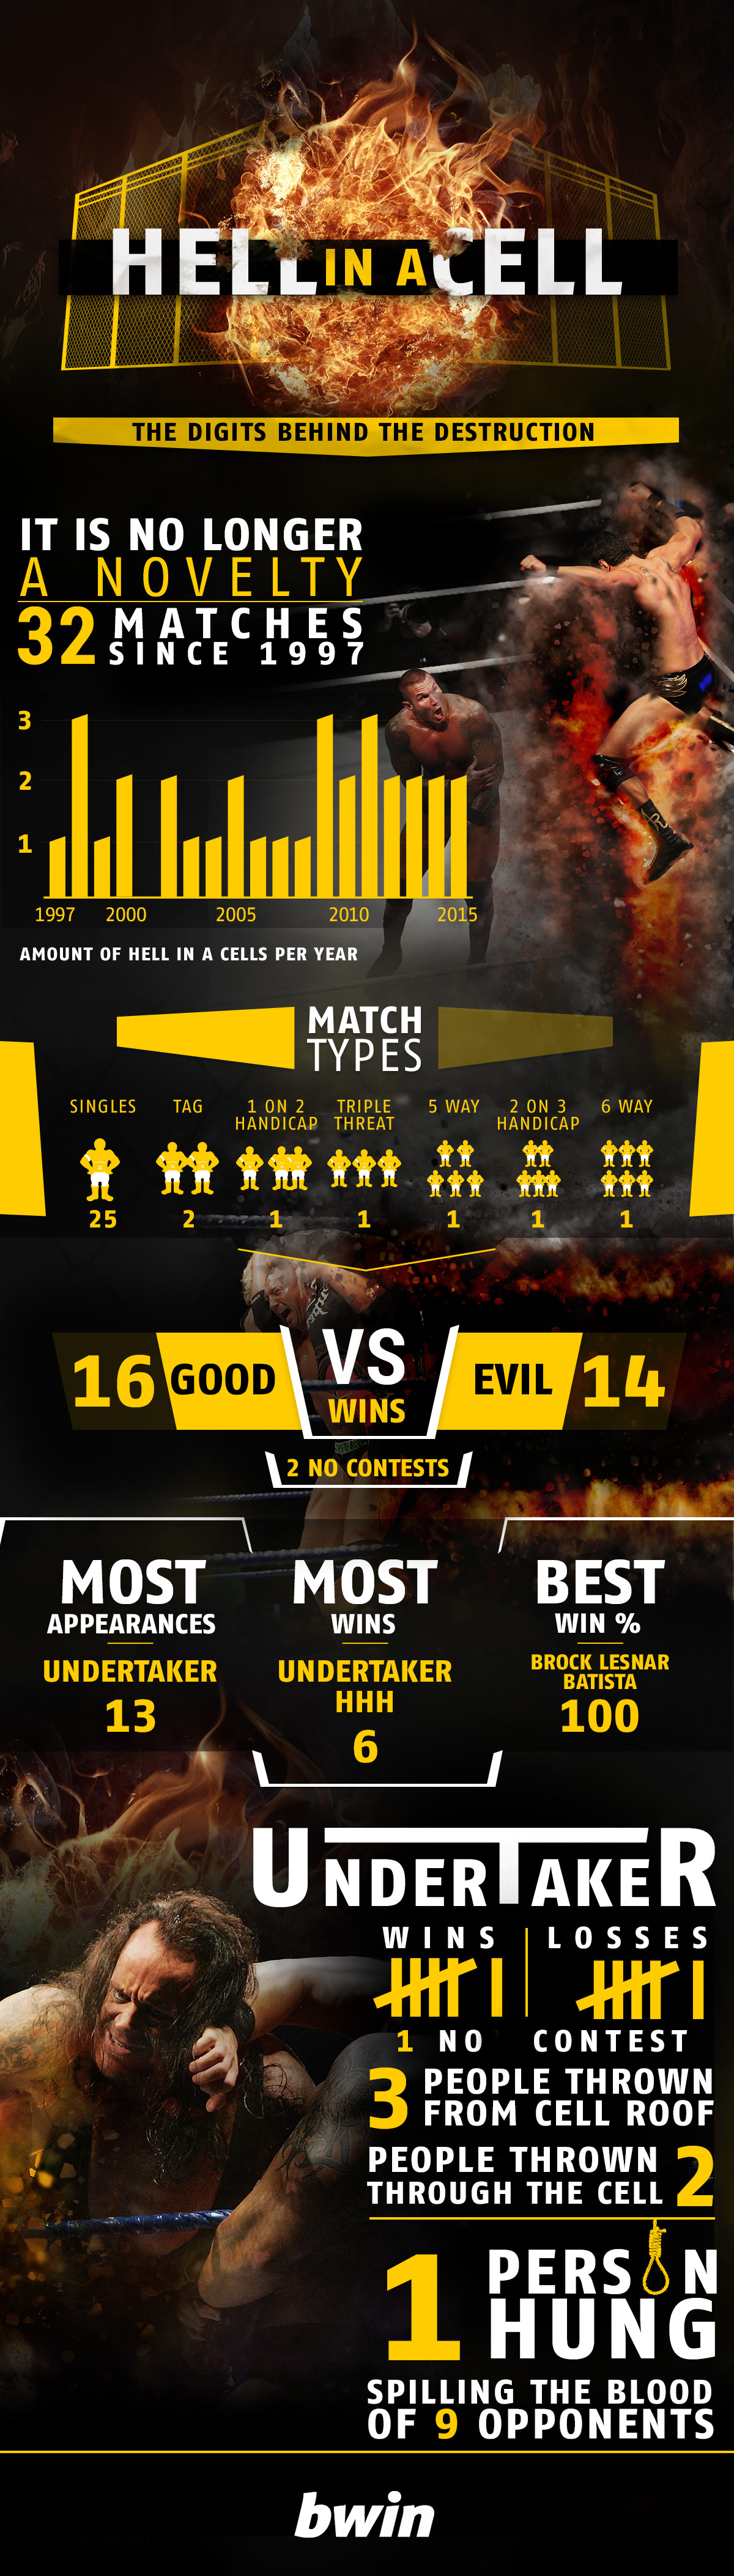 Bwin-WWE-Hell-in-a-cell-V6